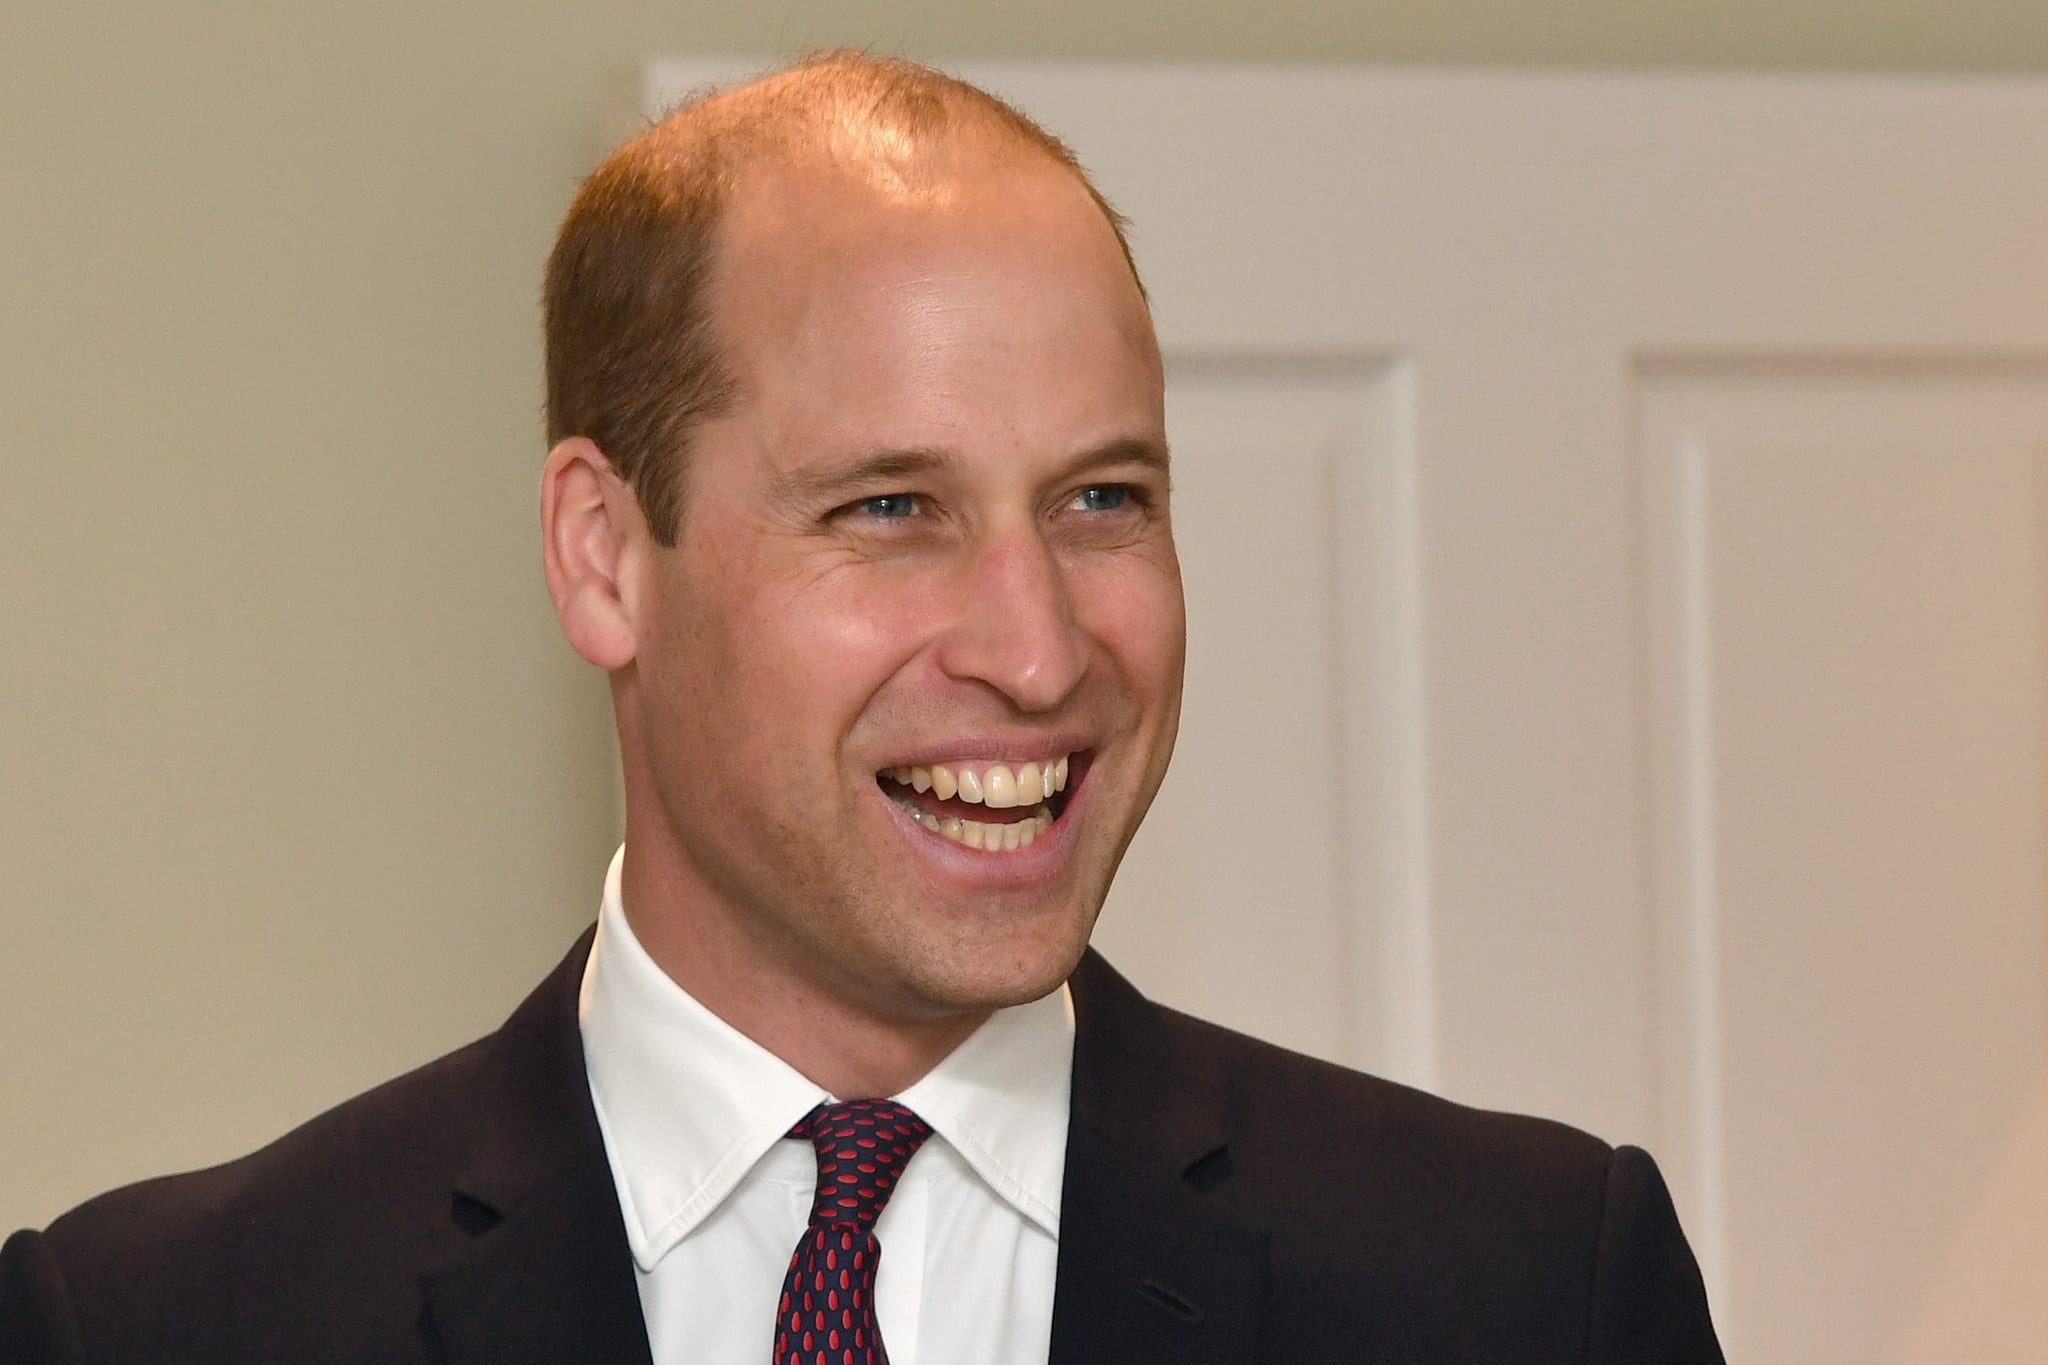 LIVERPOOL, ENGLAND - JUNE 19:  The Duke of Cambridge smiles as he meets families during a visit to James' Place in Liverpool on June 19, 2018 in Liverpool, England. James' Place is a non clinical centre for men in suicidal crisis which will fully open in mid July (Photo by Anthony Devlin - WPA Pool/Getty Images)